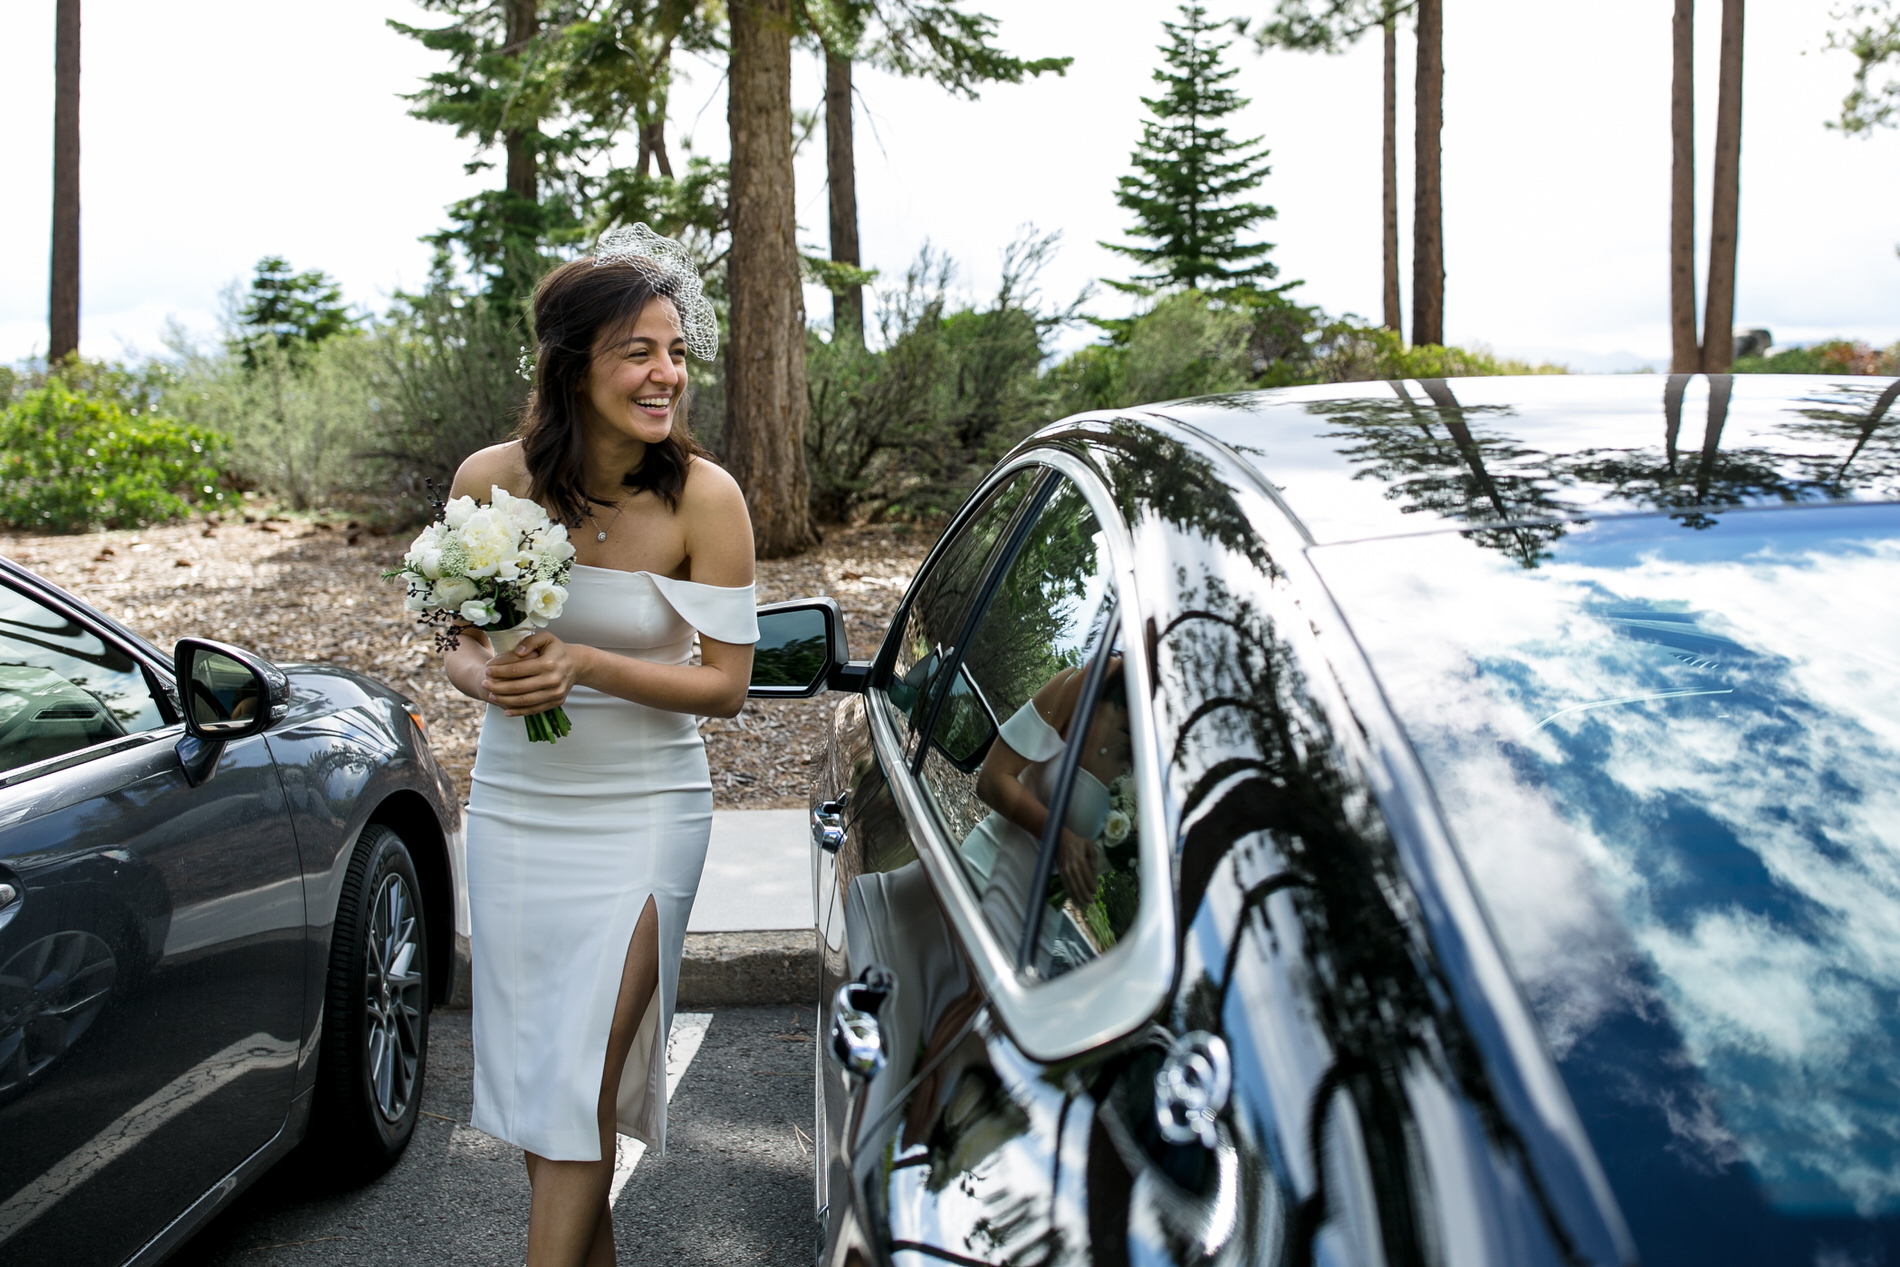 Sand Harbor State Park, Nevada Elopement Image - The bride gets out of the car and is nervous that her groom might see her before the ceremony.